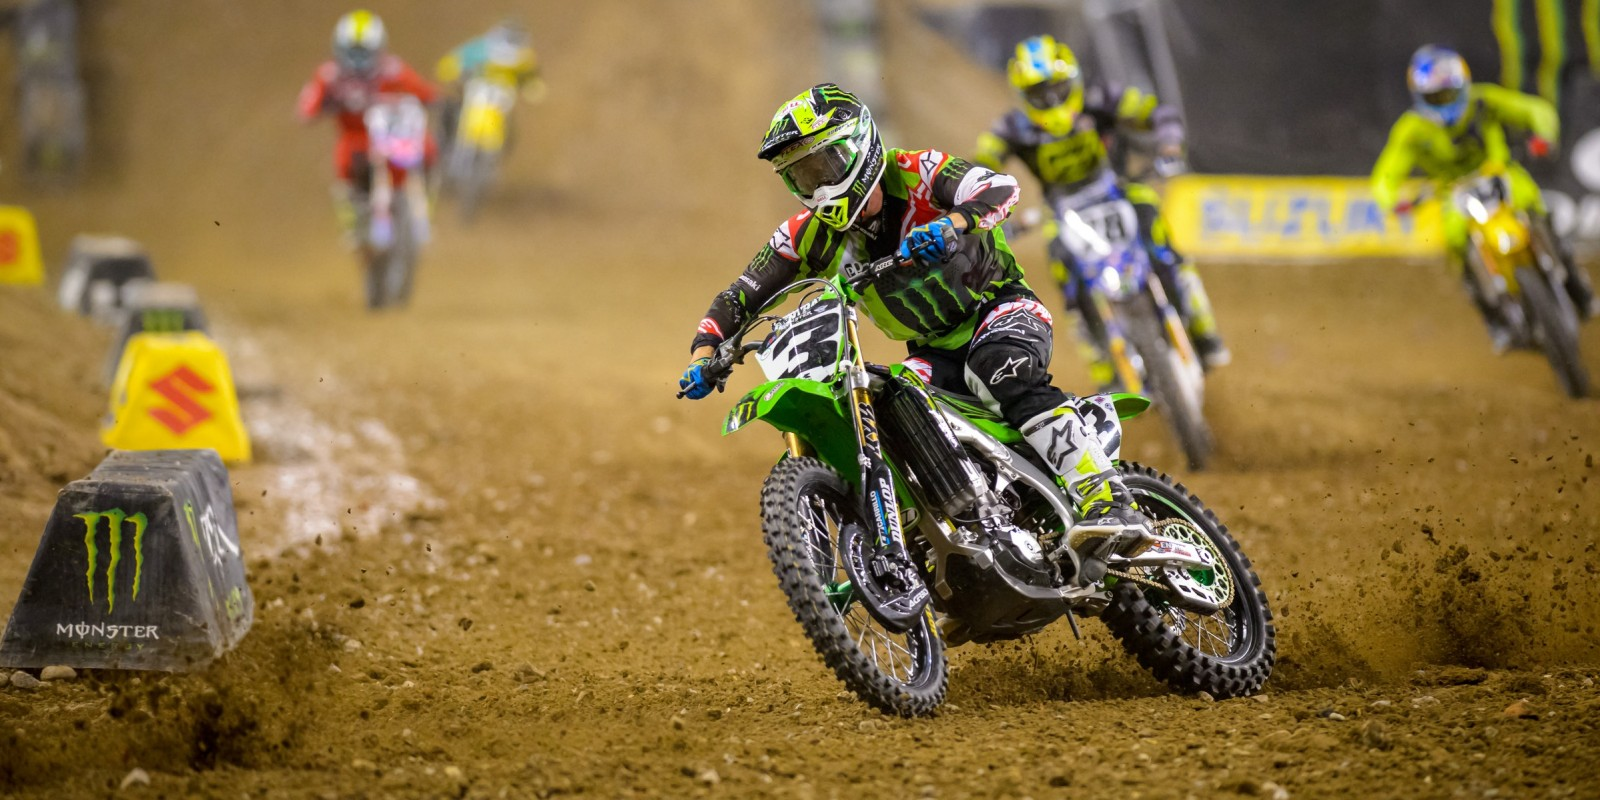 Monster athletes compete in the Supercross season in Detroit